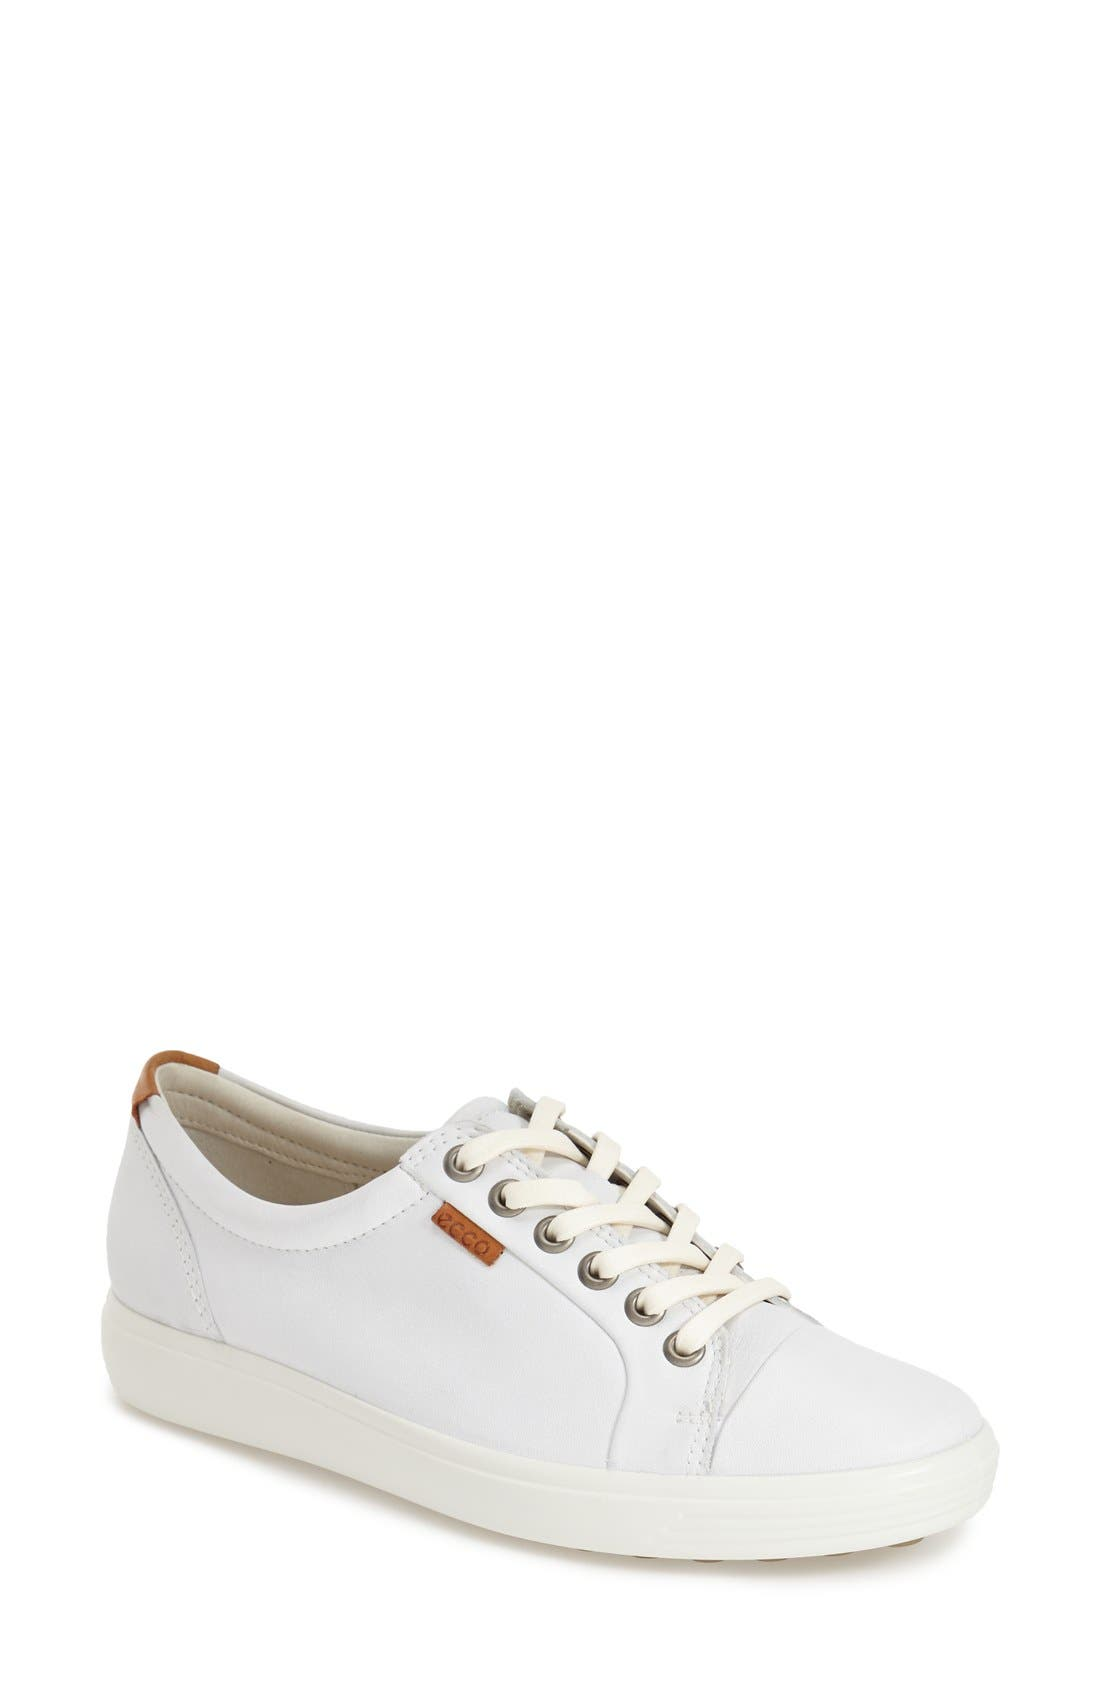 Soft 7 Sneaker,                         Main,                         color, White